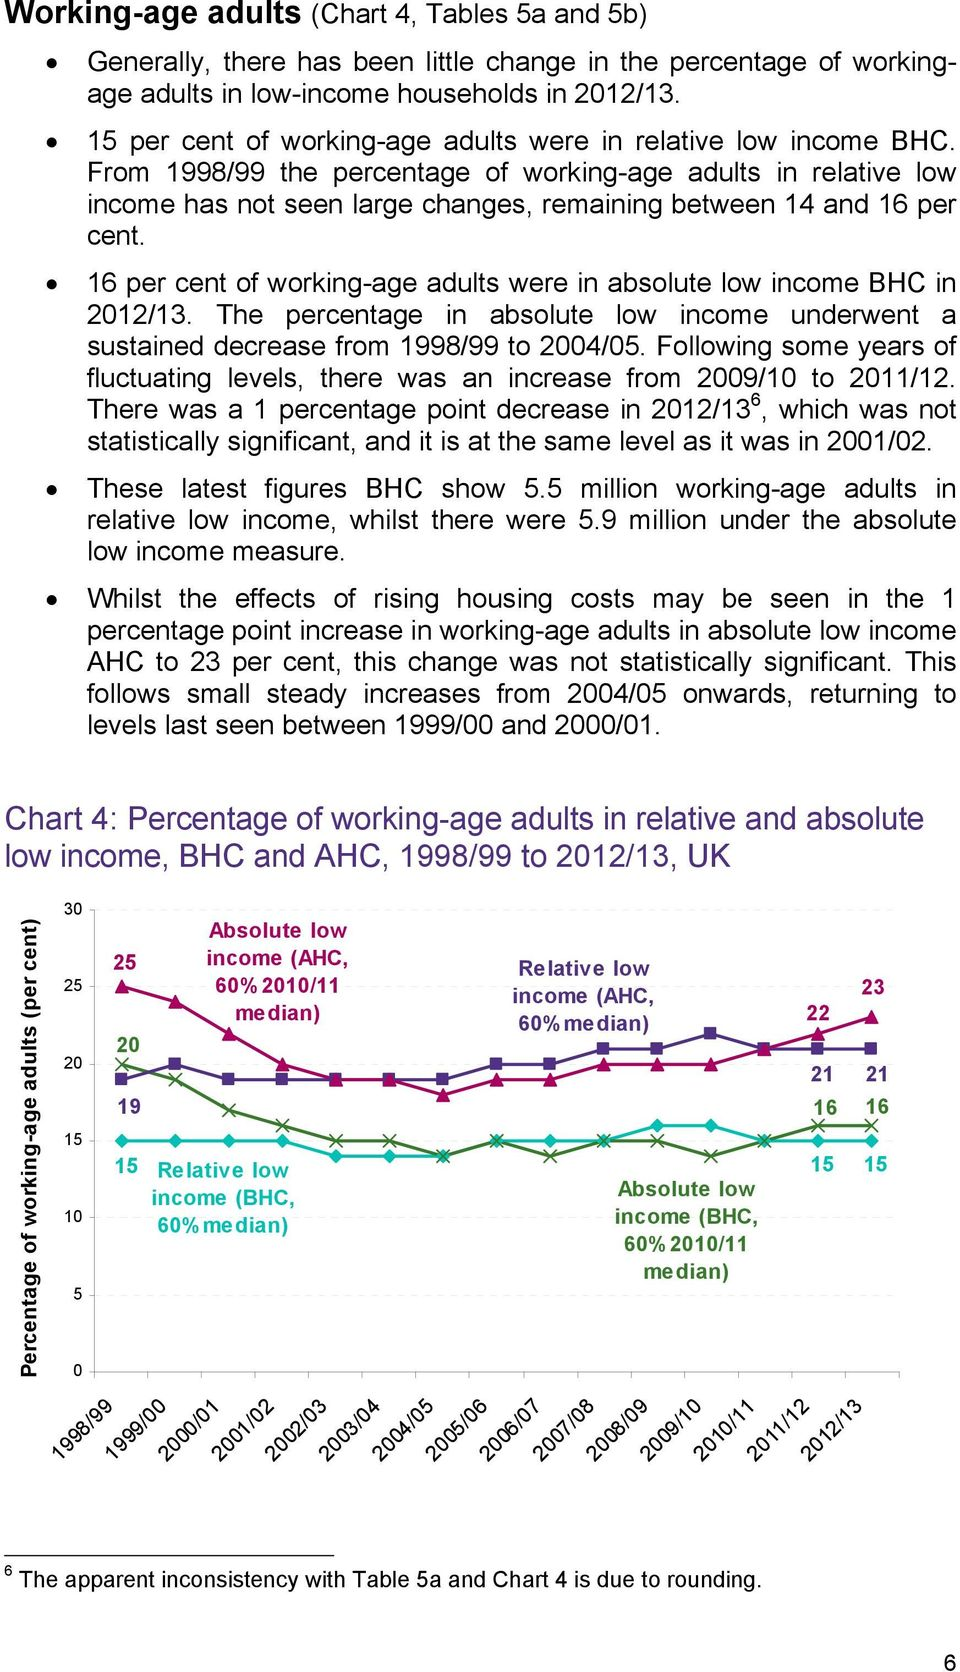 From 1998/99 the percentage of working-age adults in relative low income has not seen large changes, remaining between 14 and 16 per cent.